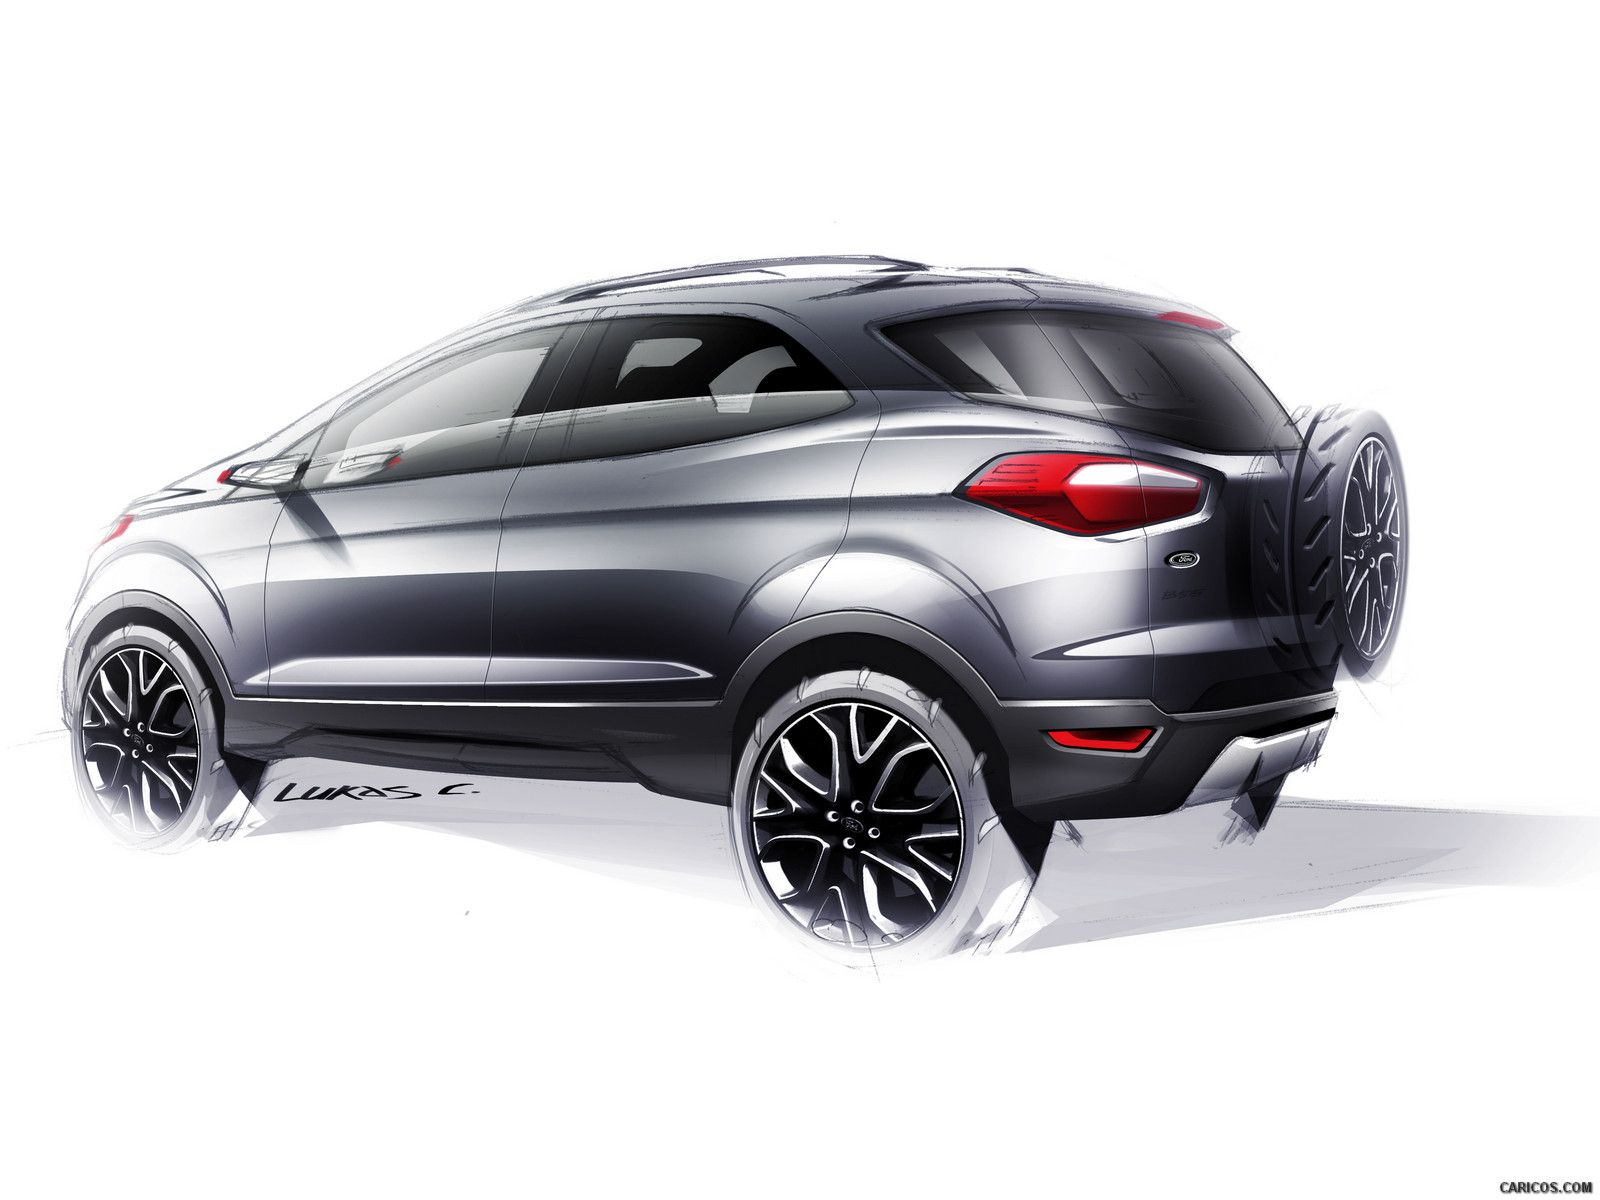 2013 Ford EcoSport Wallpaper Ford ecosport, Ford, Auto